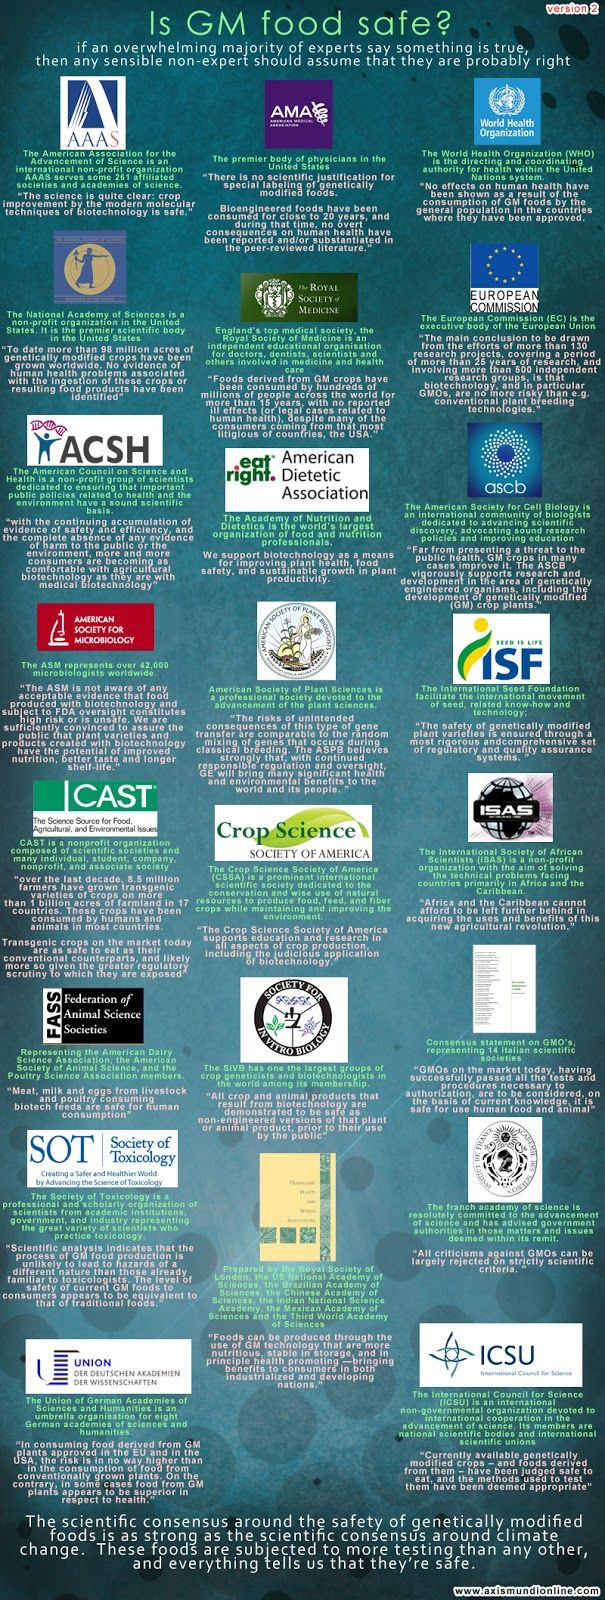 {infographic} Scientific consensus on the safety of GMOs: Smart People, Website, Gmo Food, Cancer Food, Gm Food, Gmo Genetics, Food Safe, Gmo Cancer, Food Tipstrick